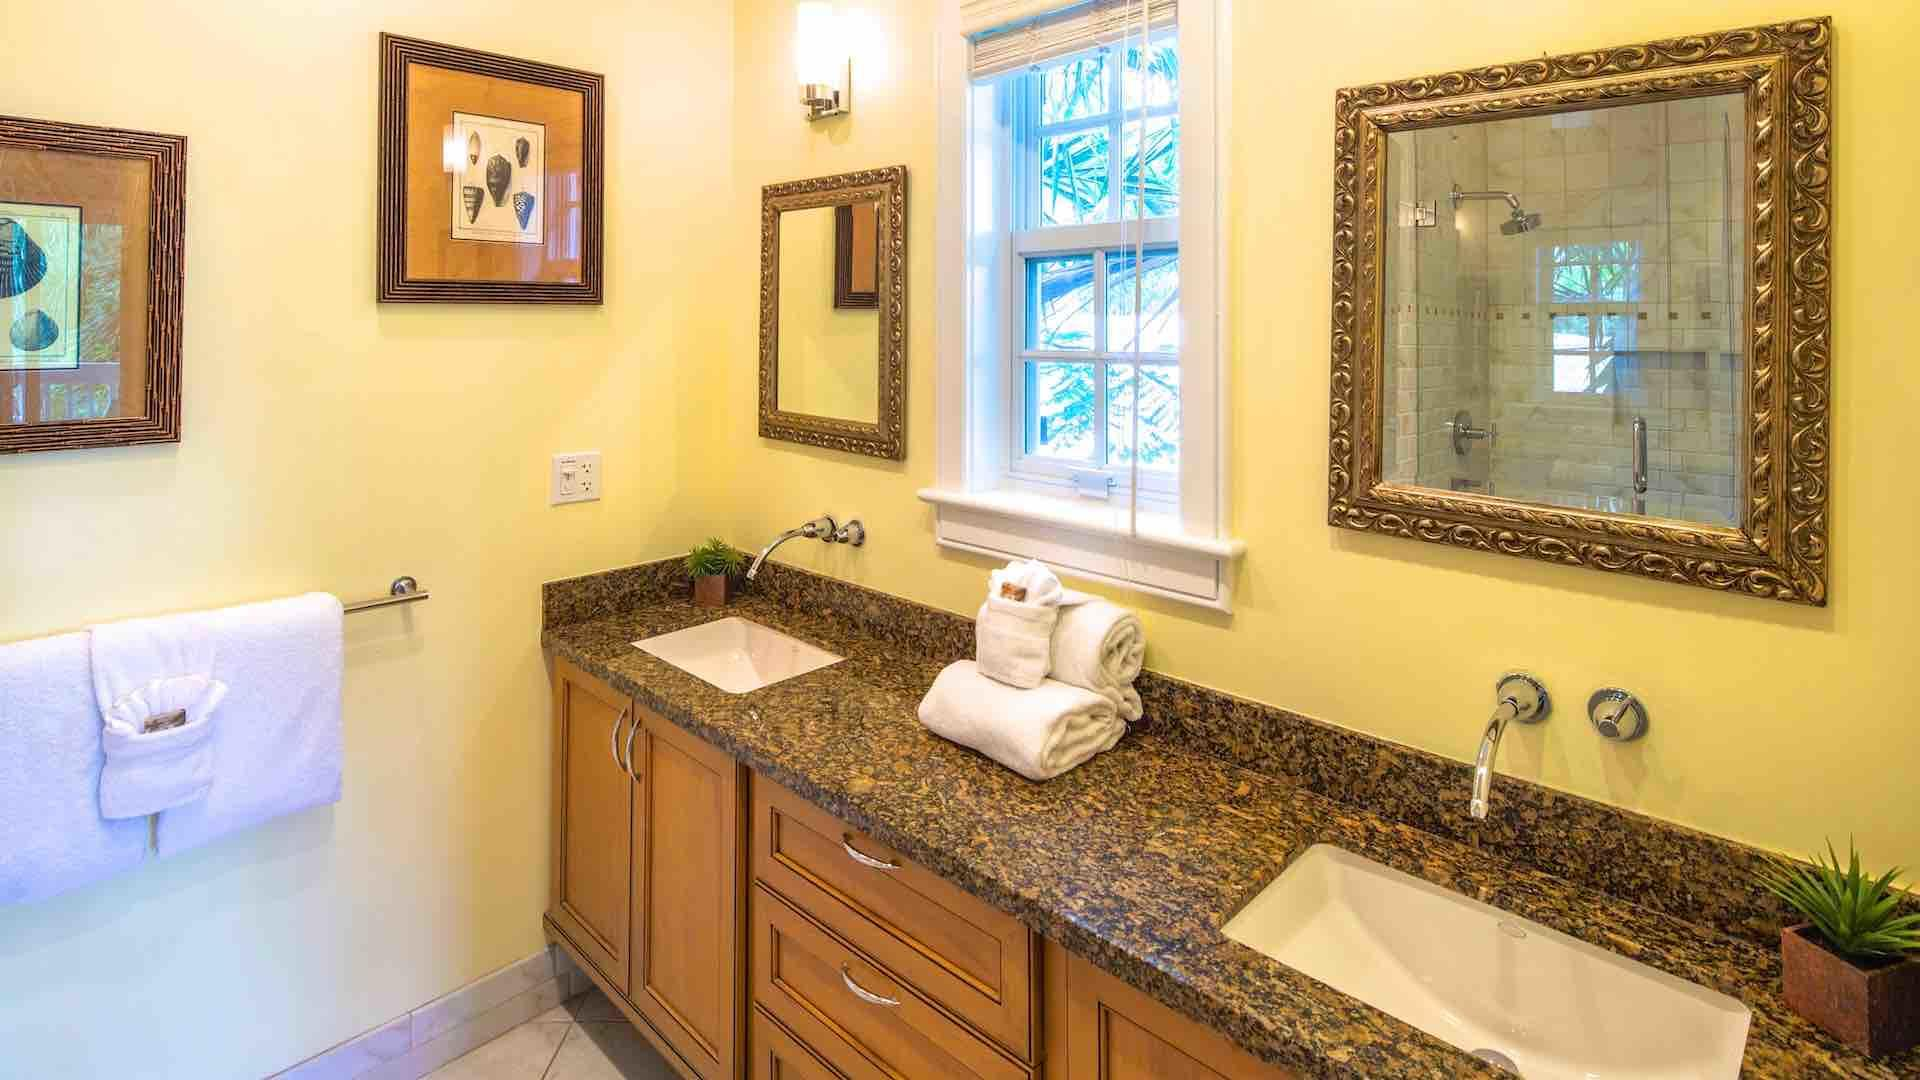 The first master bathroom has a his and her vanity...